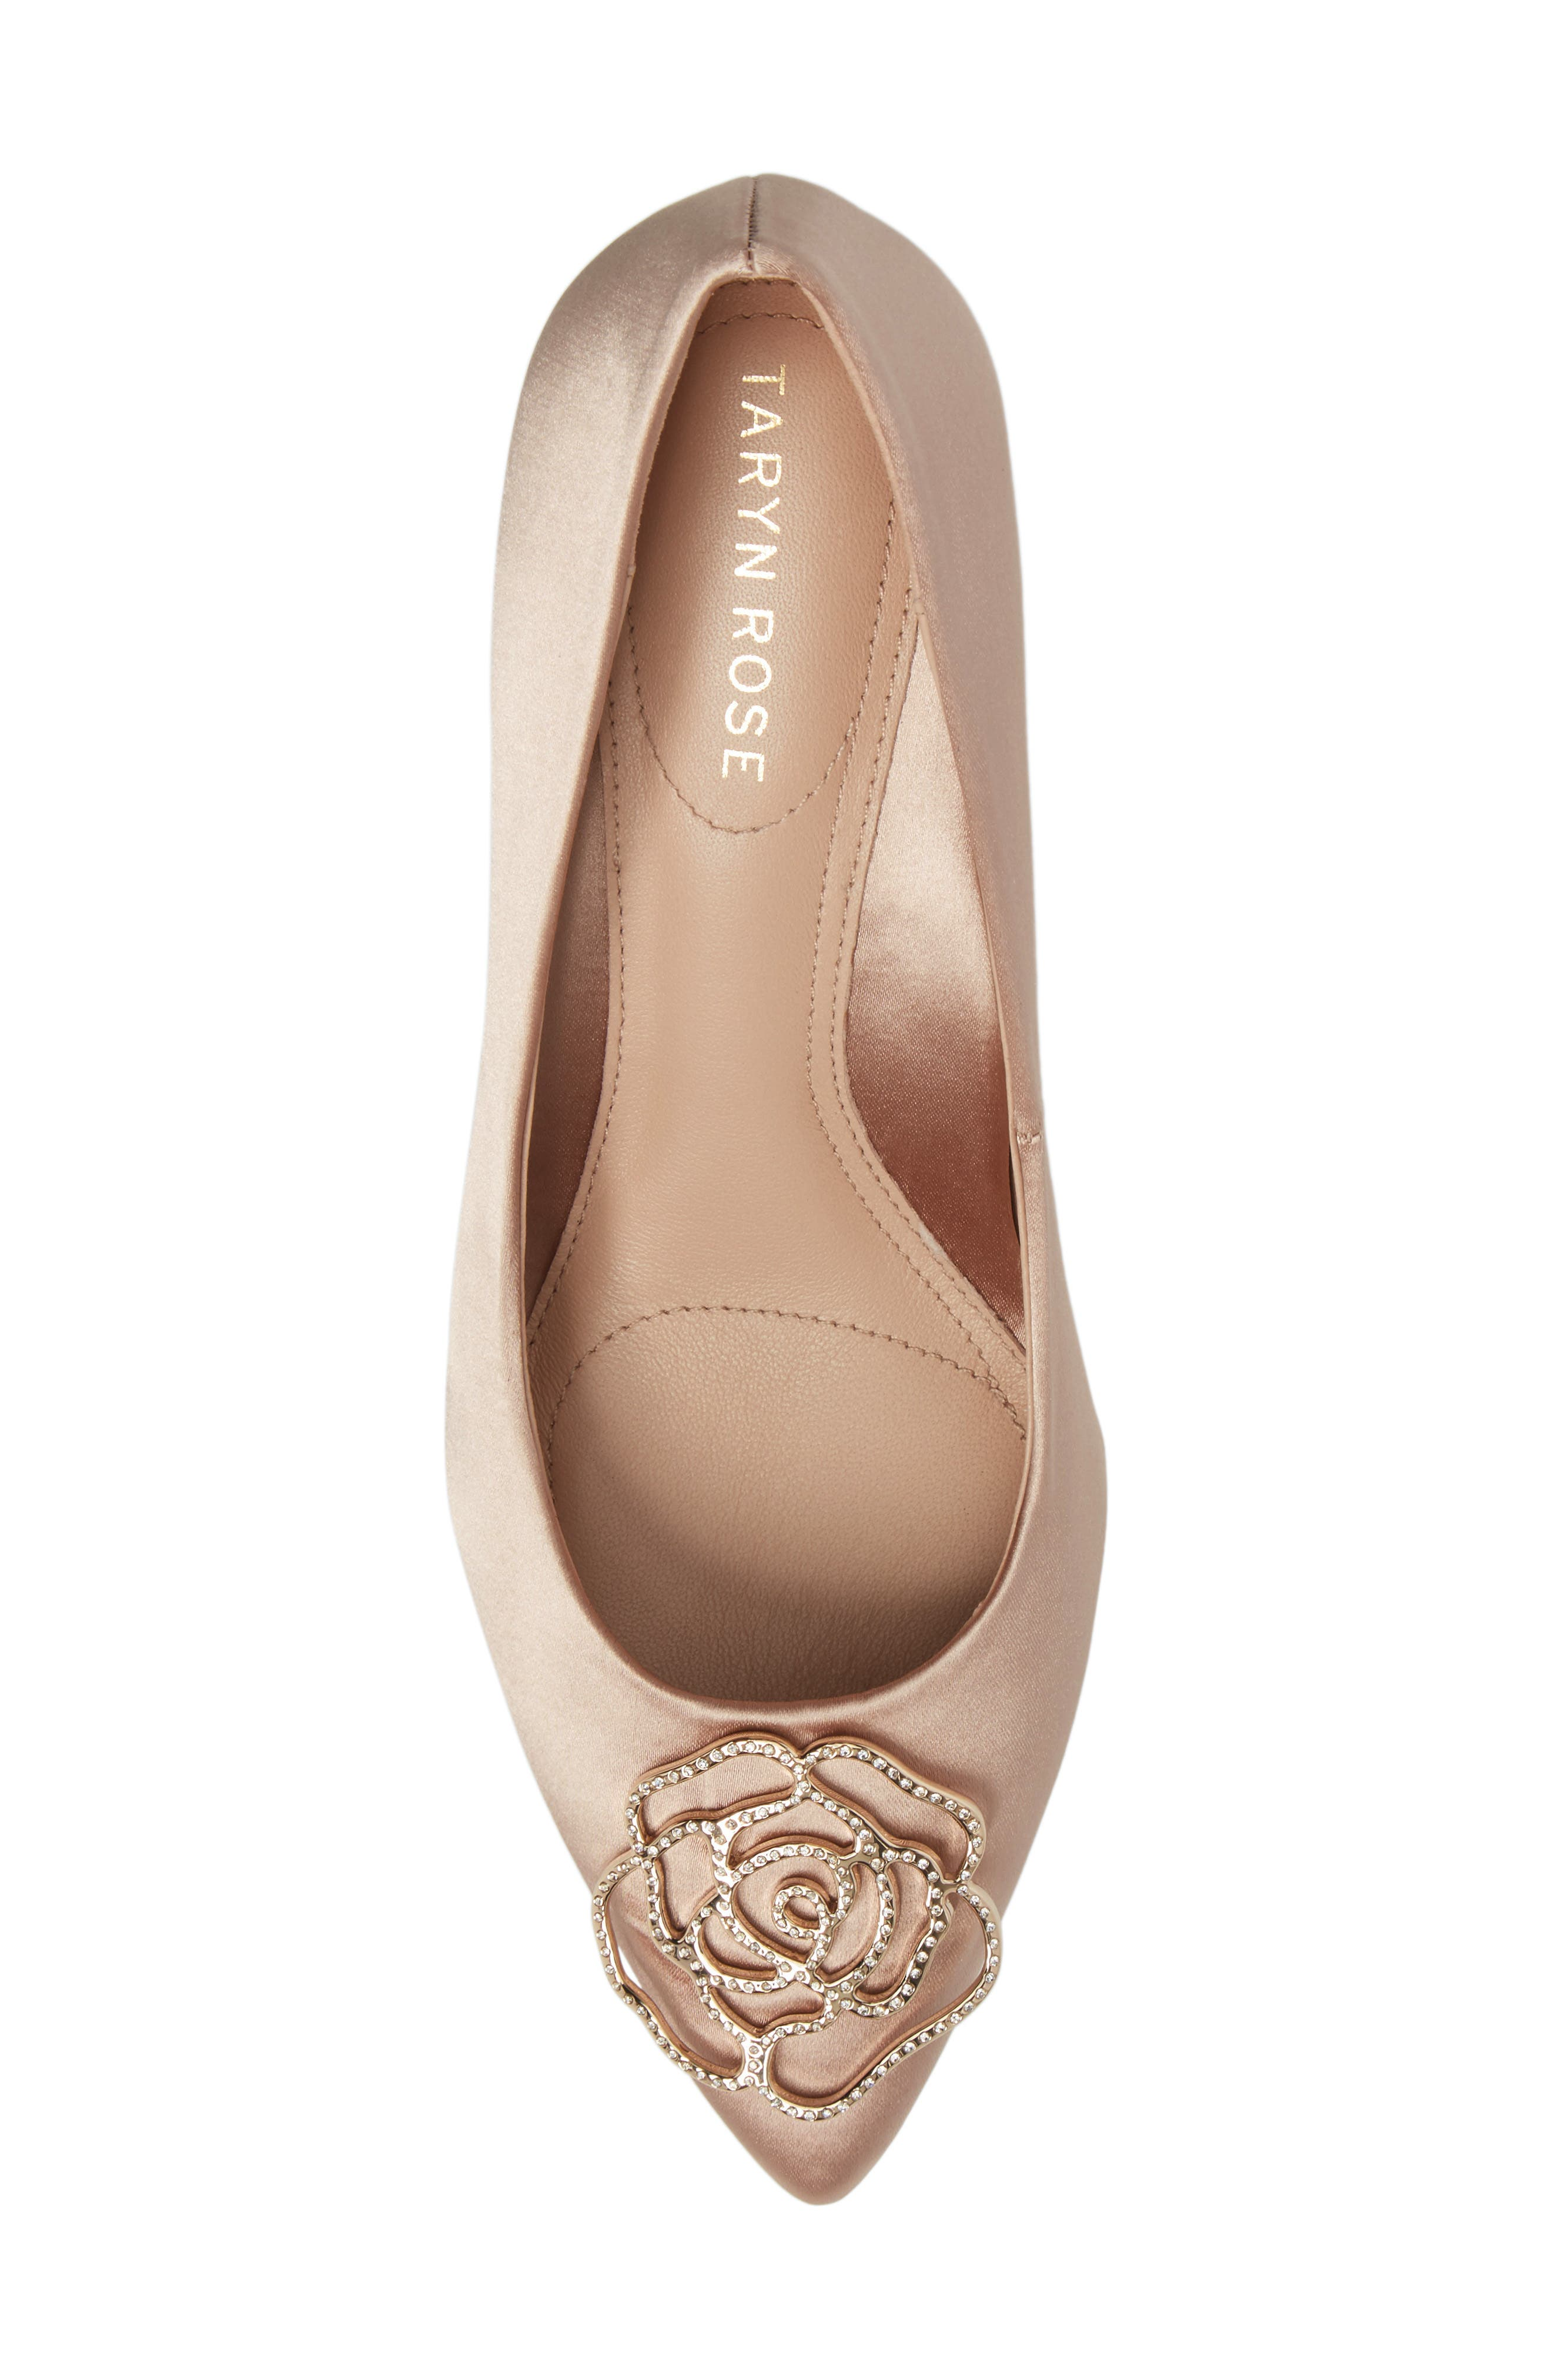 Maci Pump,                             Alternate thumbnail 5, color,                             Blush Satin Fabric